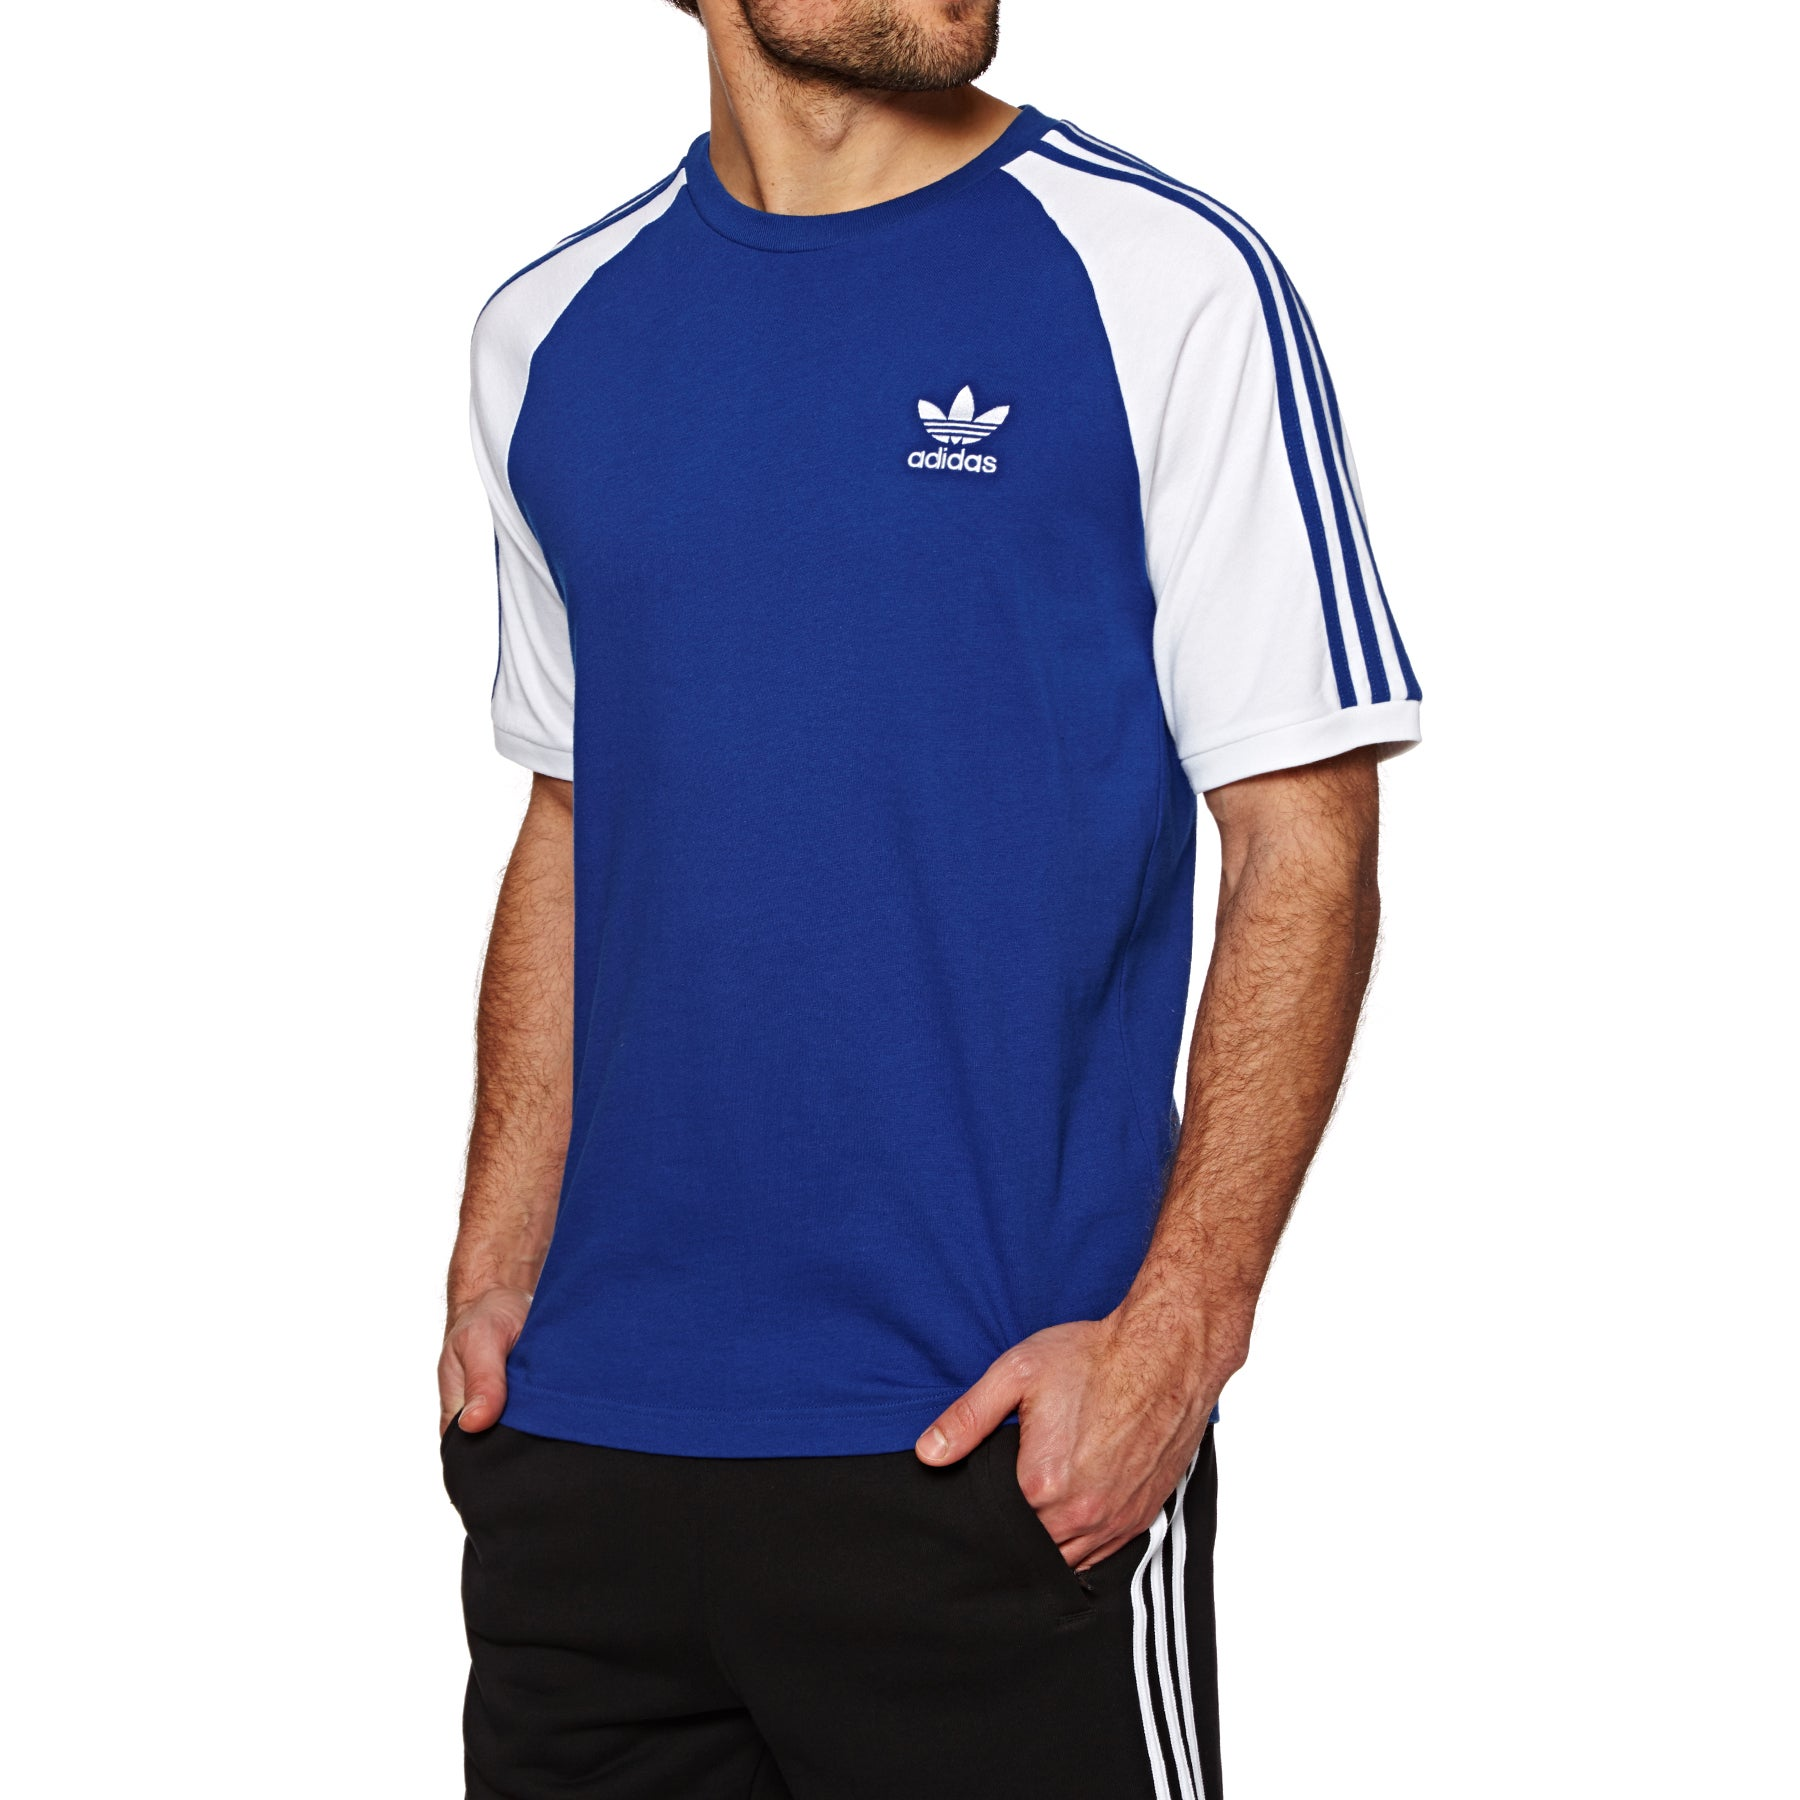 Adidas Originals 3 Stripe Short Sleeve T-Shirt - Collegiate Royal